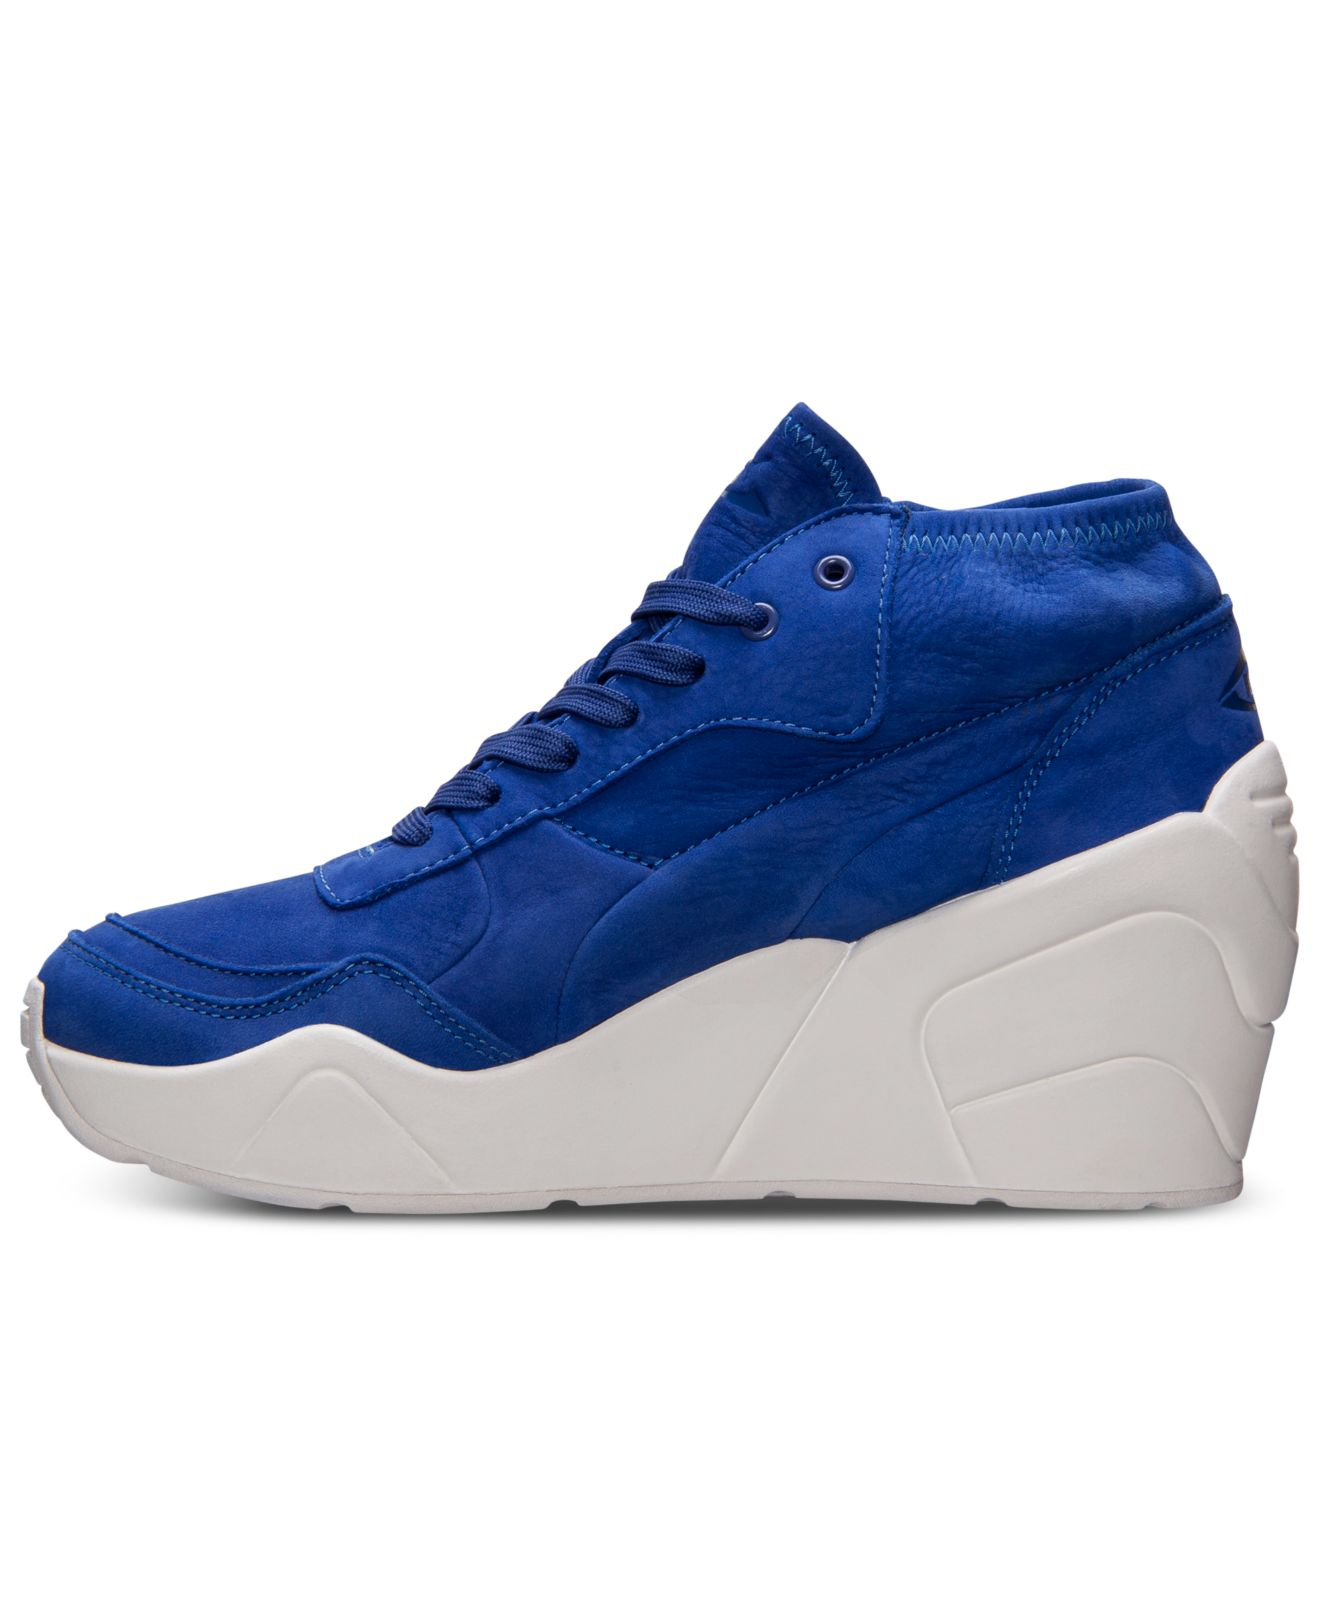 03b97caf3d7235 ... order lyst puma womens trinomic wedge casual sneakers from finish line  444a5 df44f ...